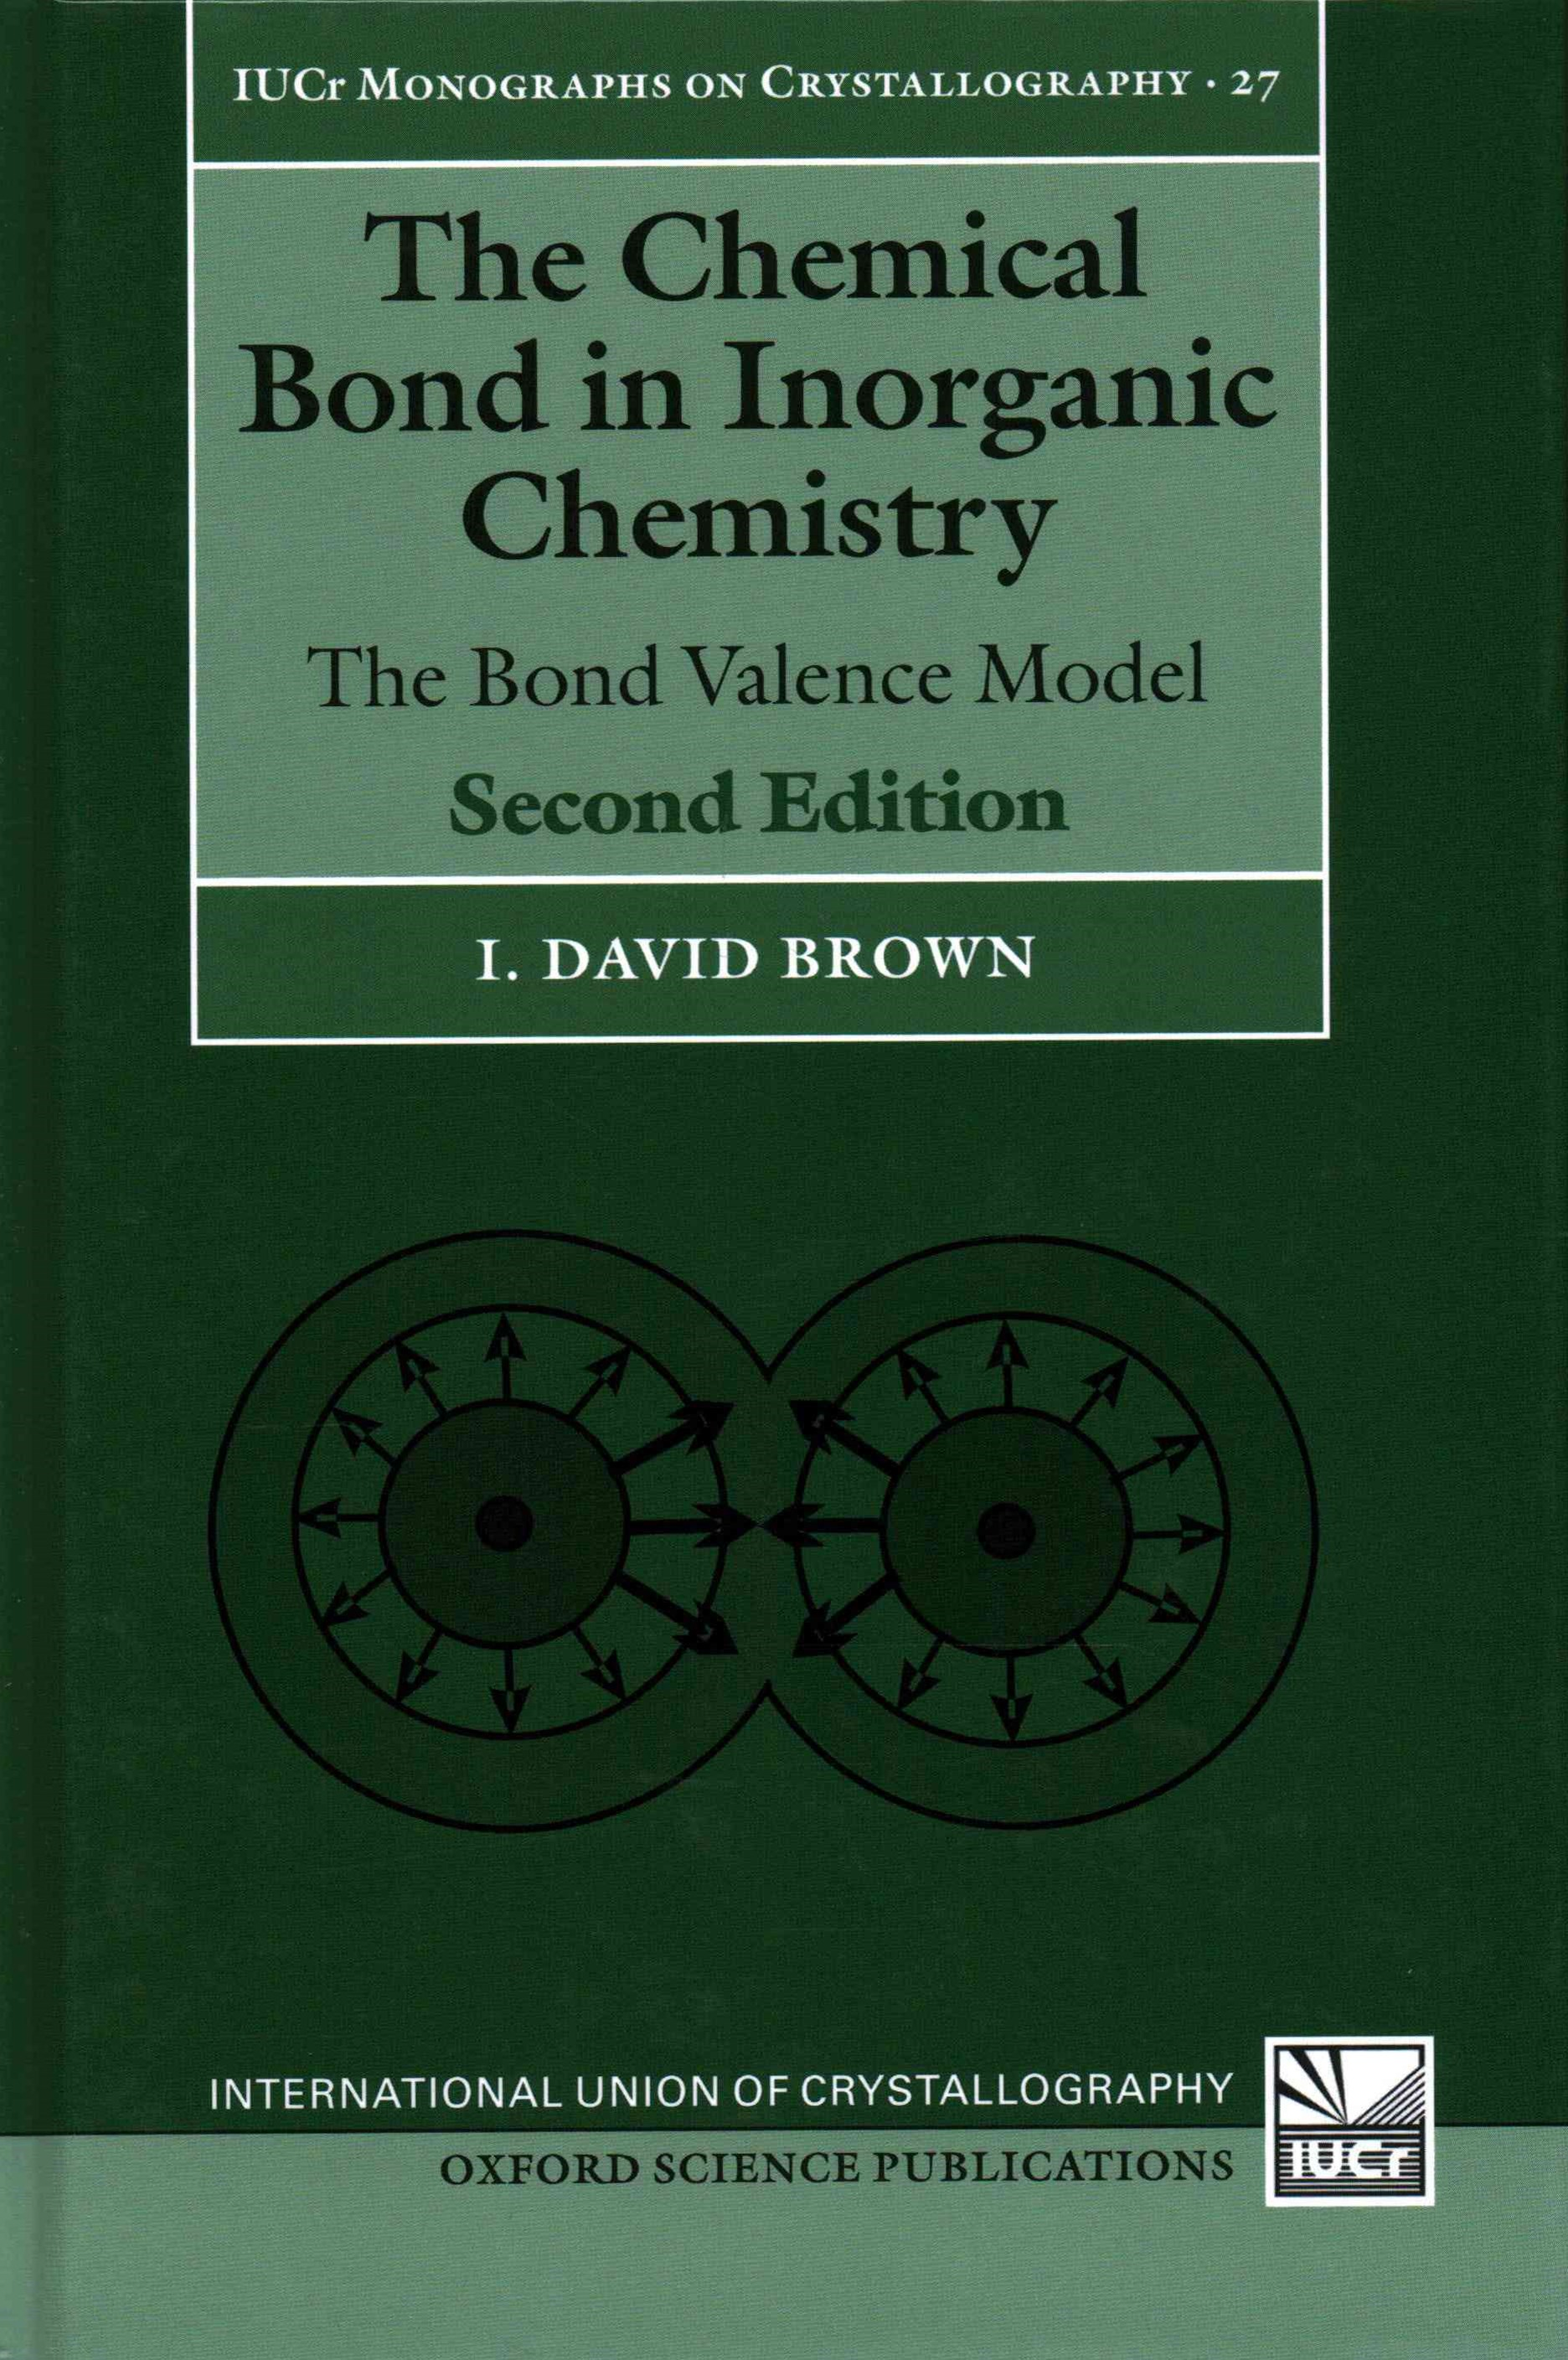 The Chemical Bond in Inorganic Chemistry